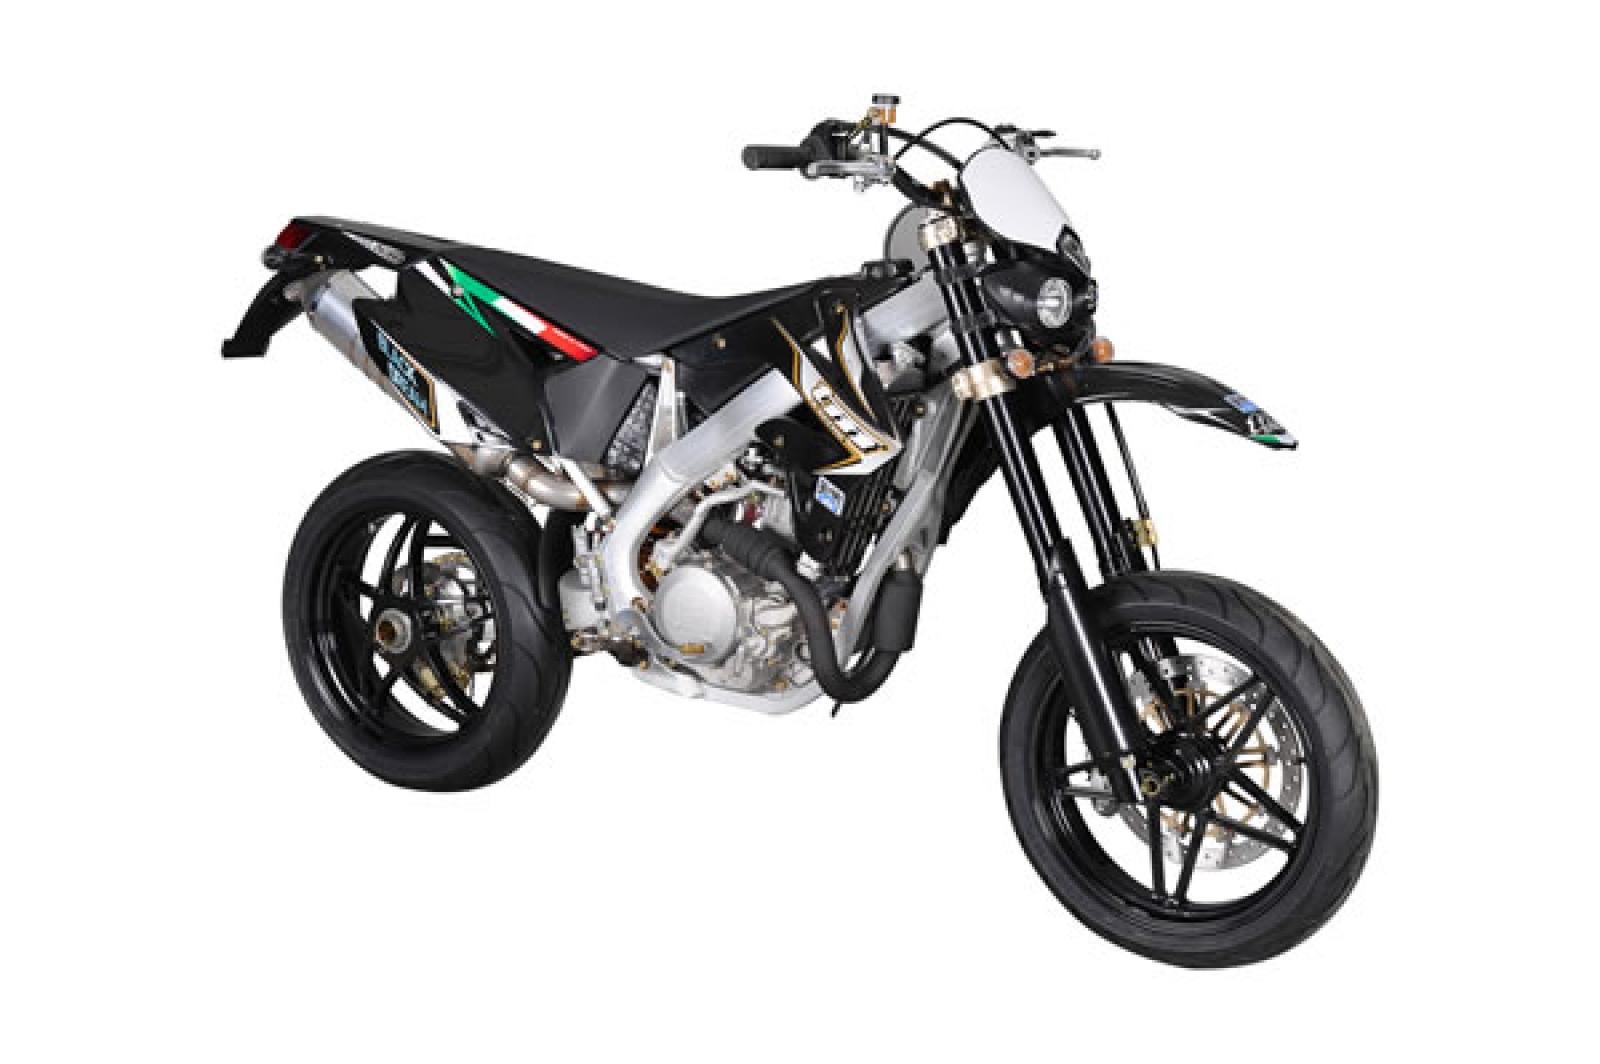 2008 TM racing SMM 125 Black Dream - Moto.ZombDrive.COM